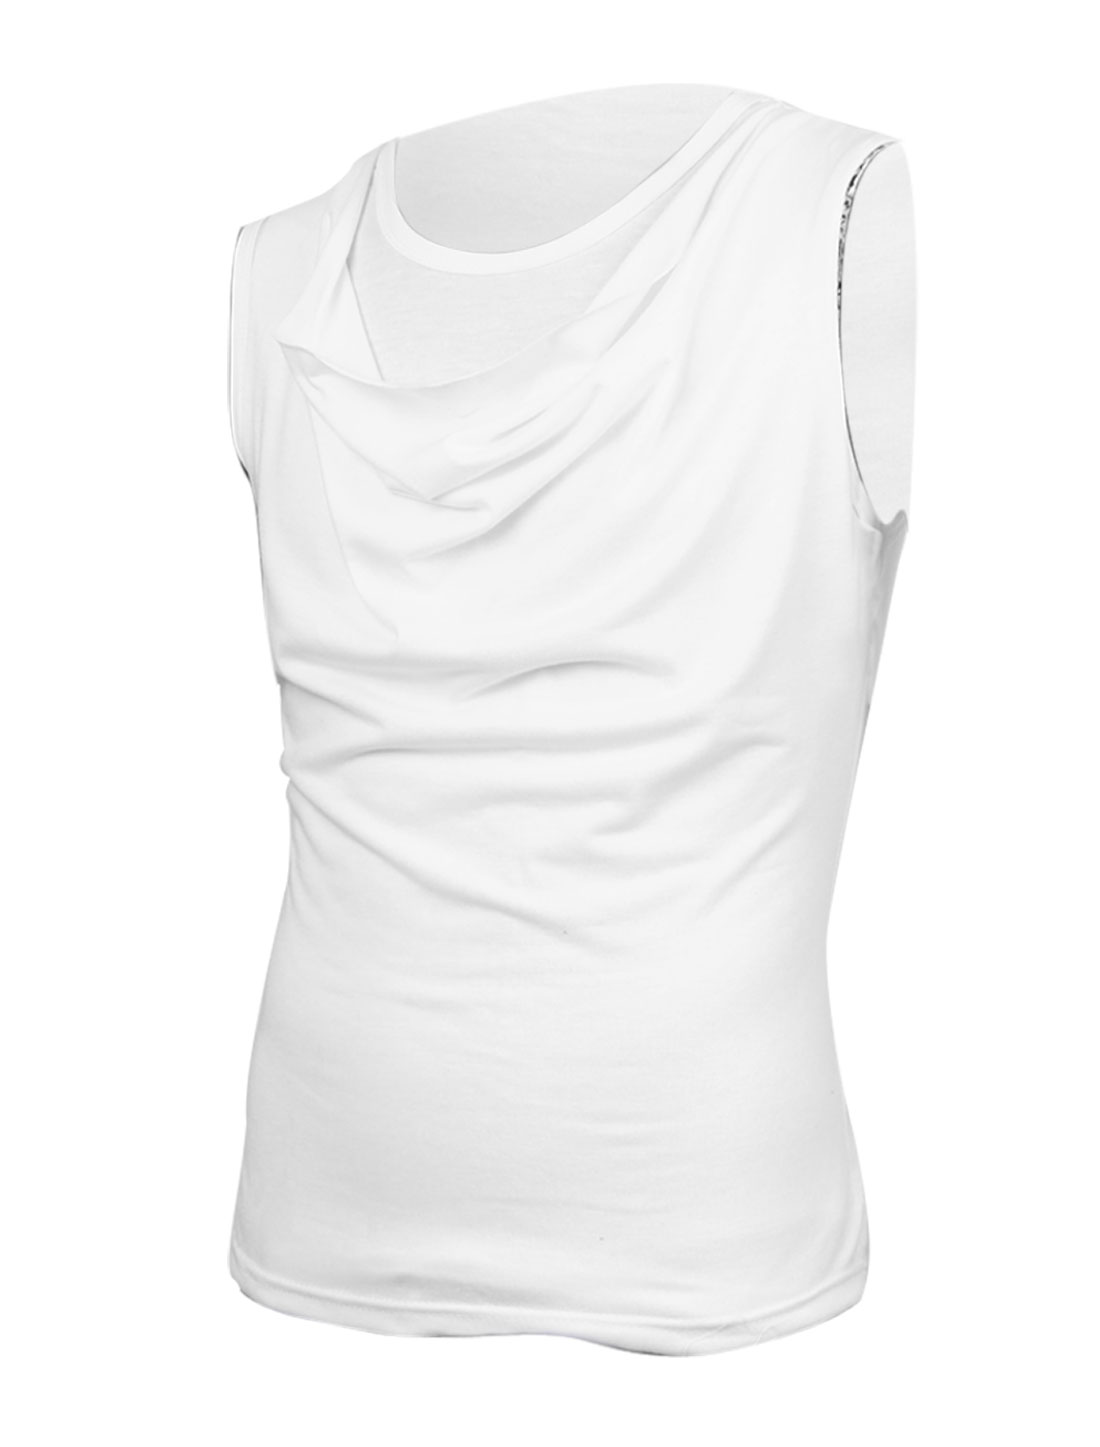 Man Cowl Neck Sleeveless Solid Color Loose Shirt White S